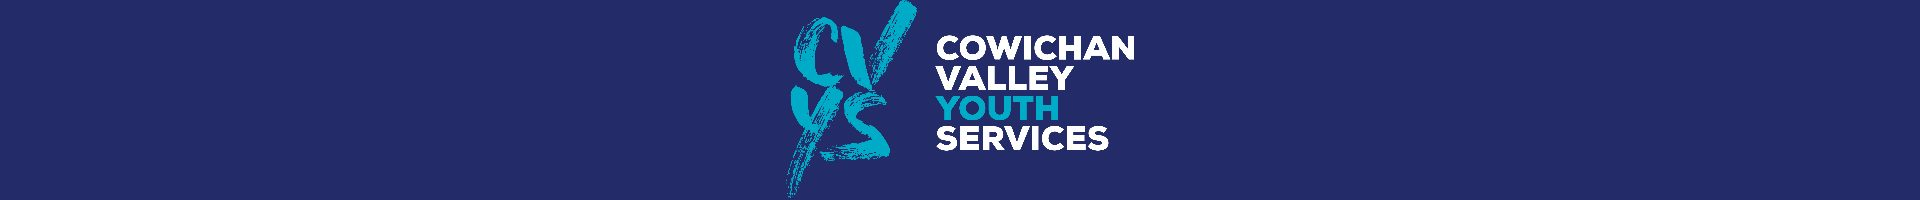 Cowichan Valley Youth Services